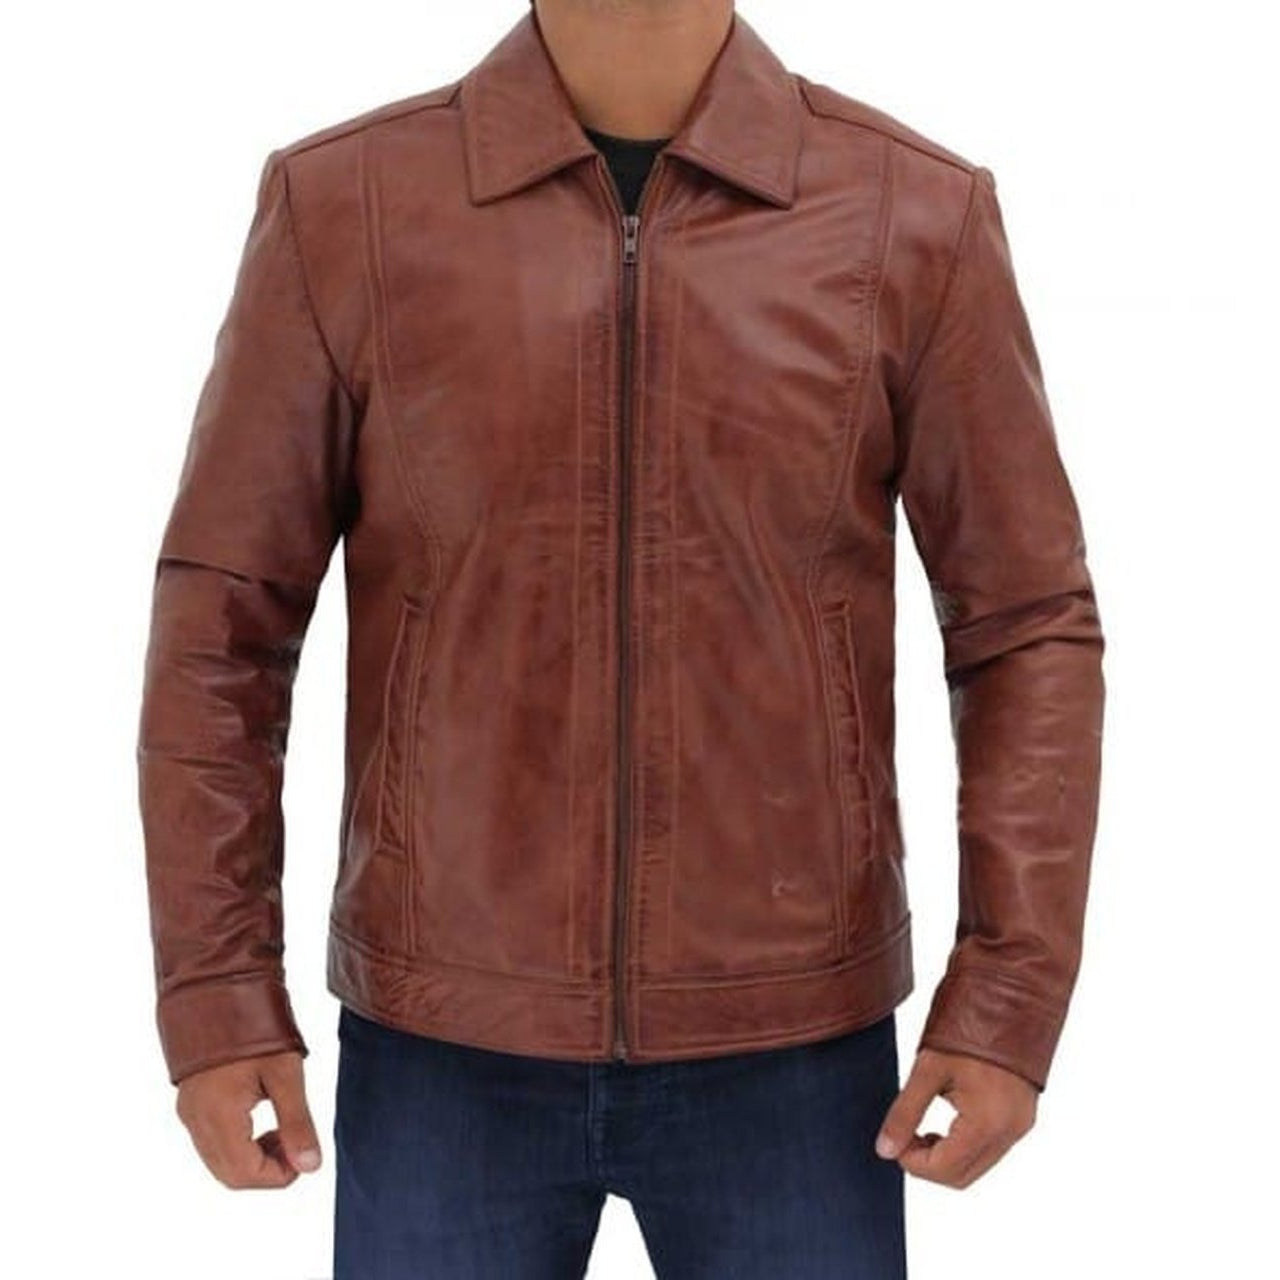 Brown Distressed Leather Jacket for Men - Leather Jacket